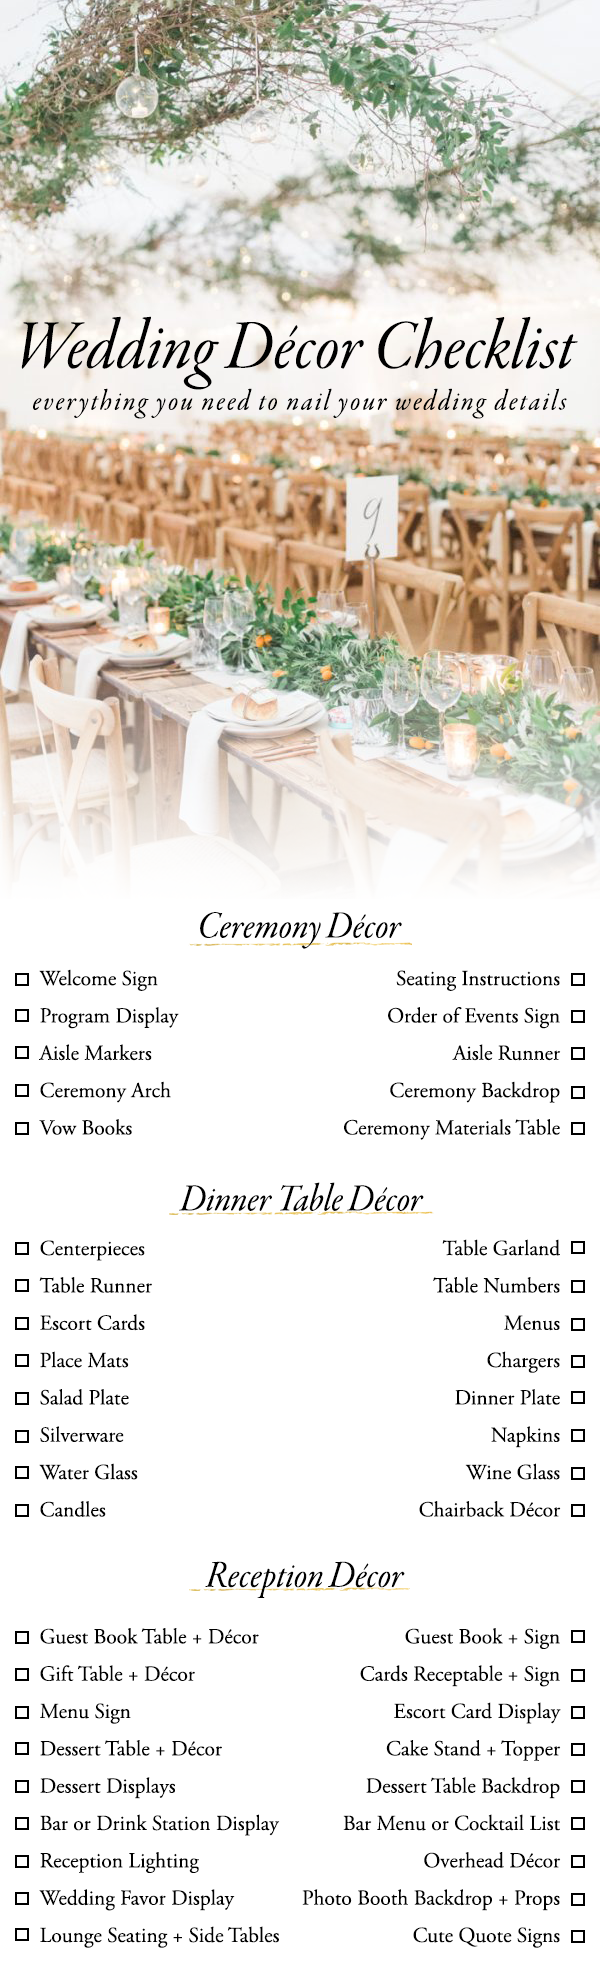 Use This Wedding Décor Checklist To Help You Nail Every